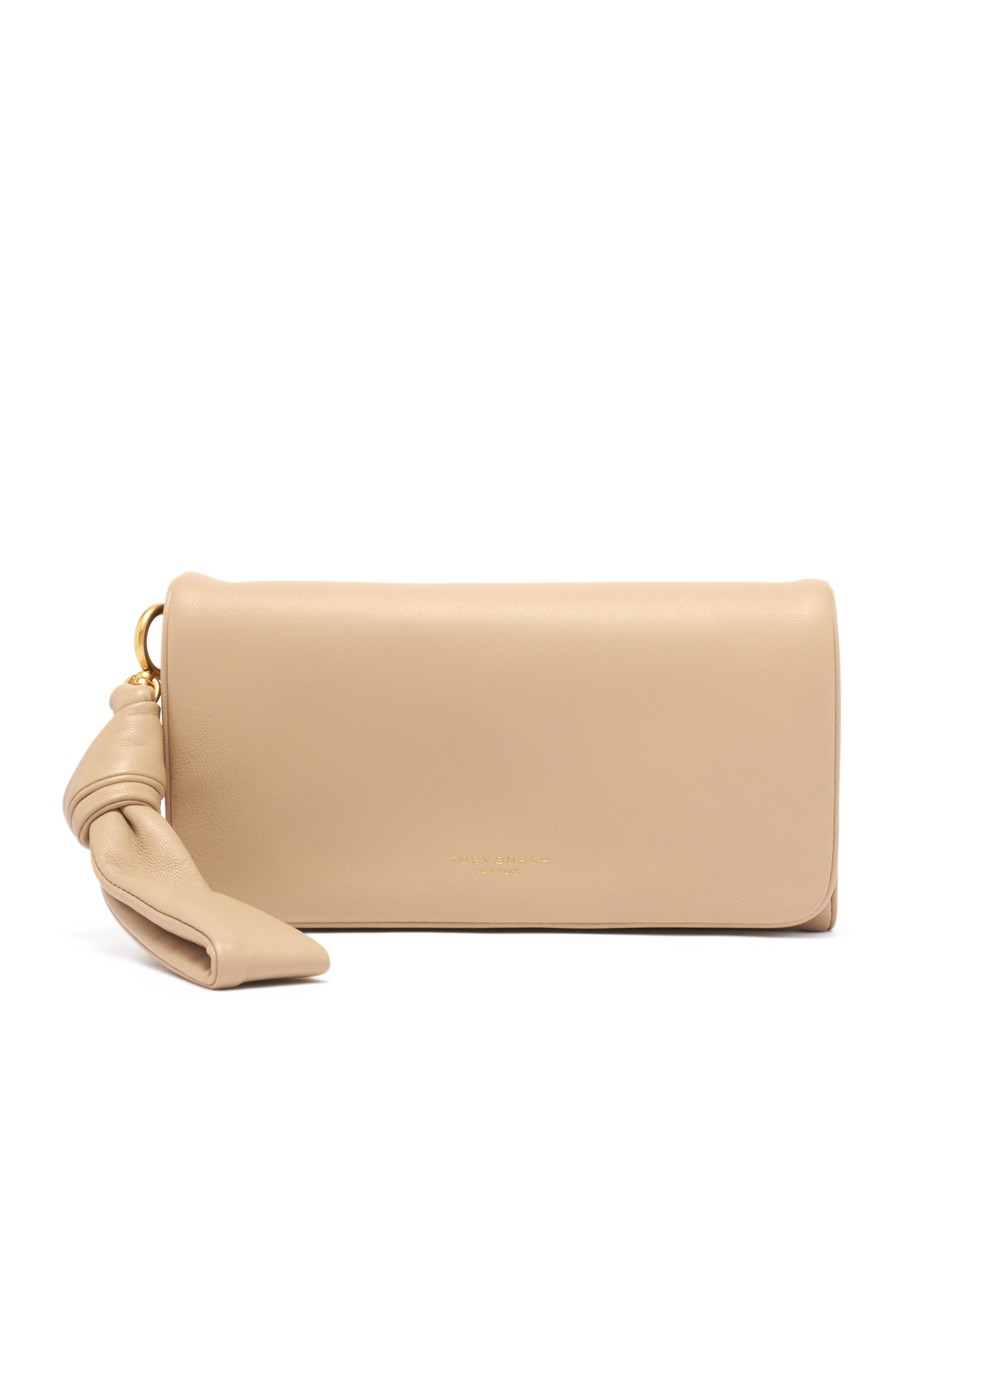 【最大47%OFF】BEAU WRISTLET|PERFECT SAND|レディース財布|Tory Burch